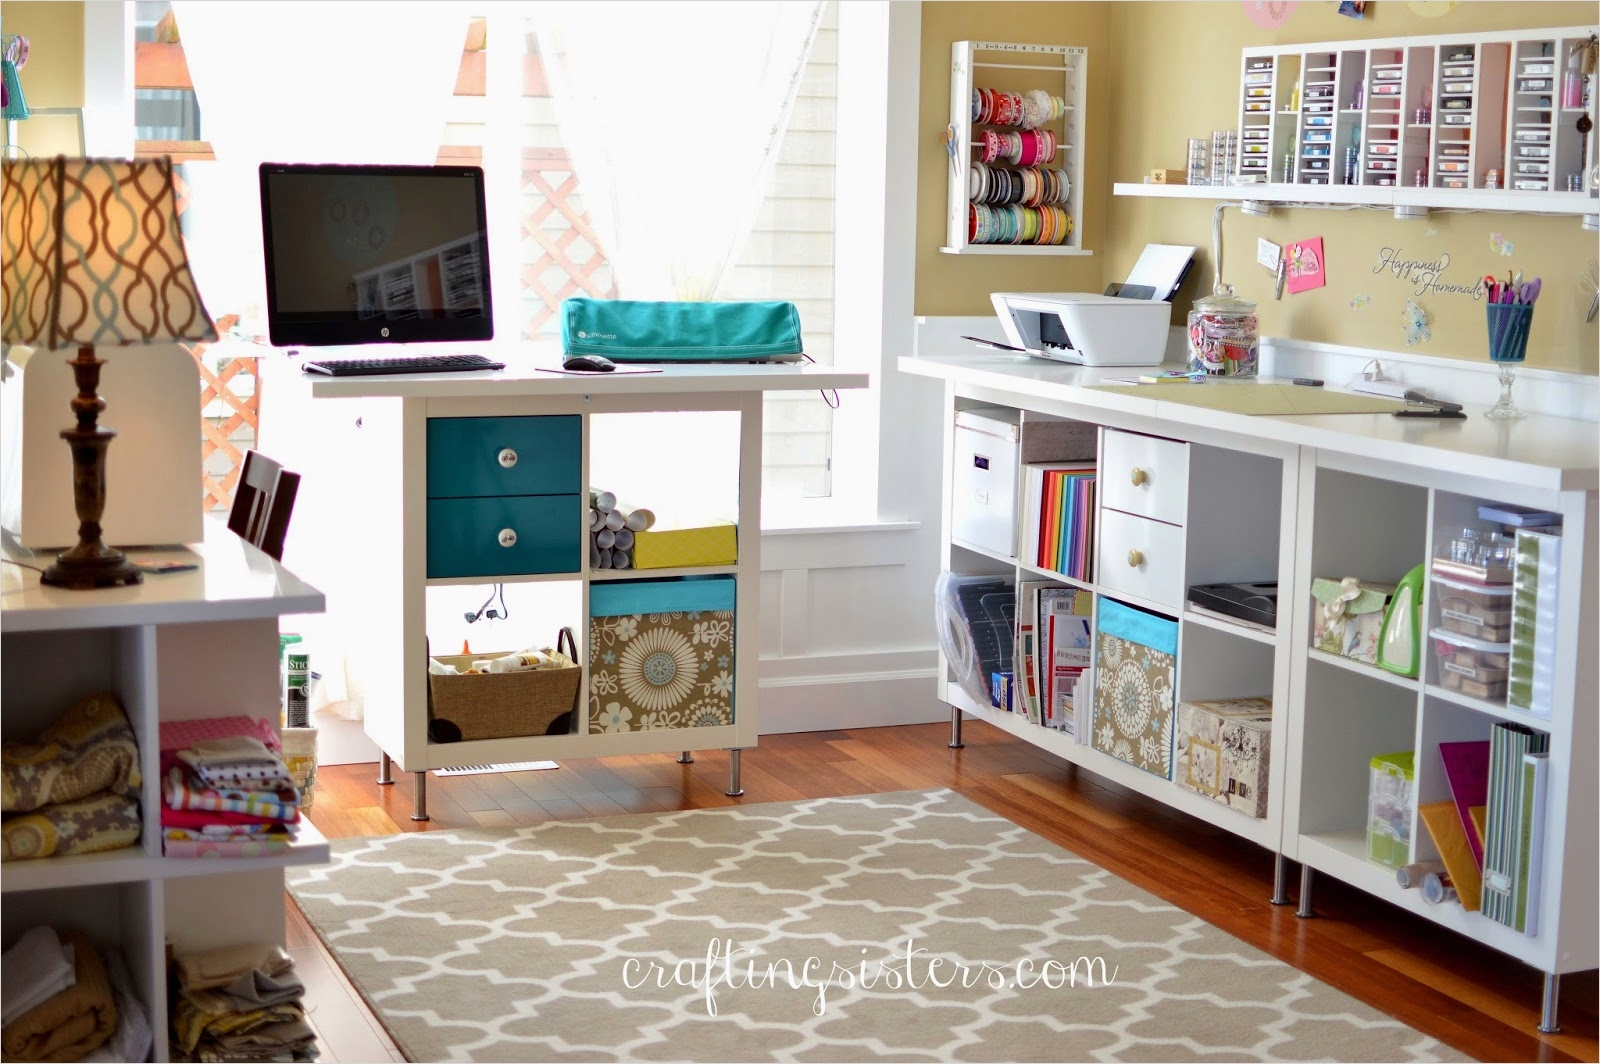 Ikea Craft Room Makeover 19 Crafting Sisters Diy Dining Room to Craft Room 9